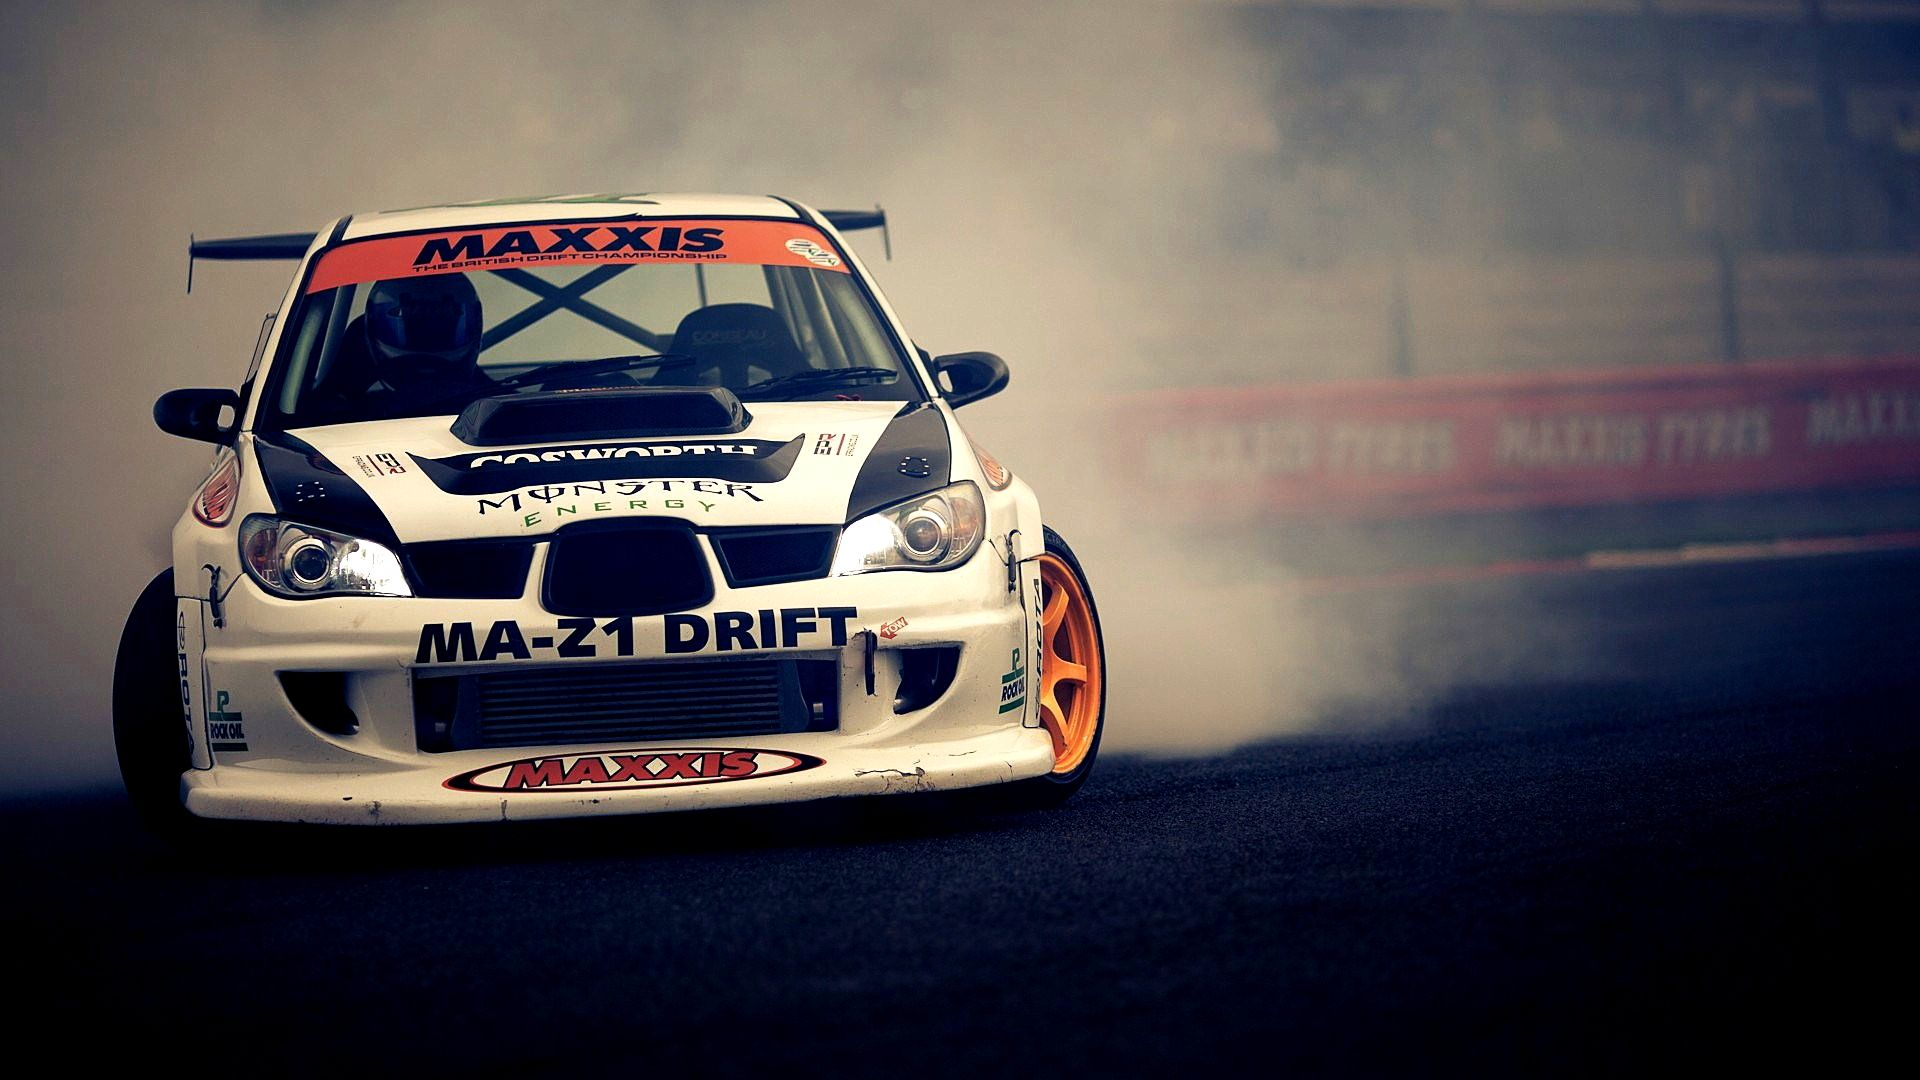 Drifting wallpapers hd drifting wallpapers hd pinterest drifting wallpapers hd voltagebd Images